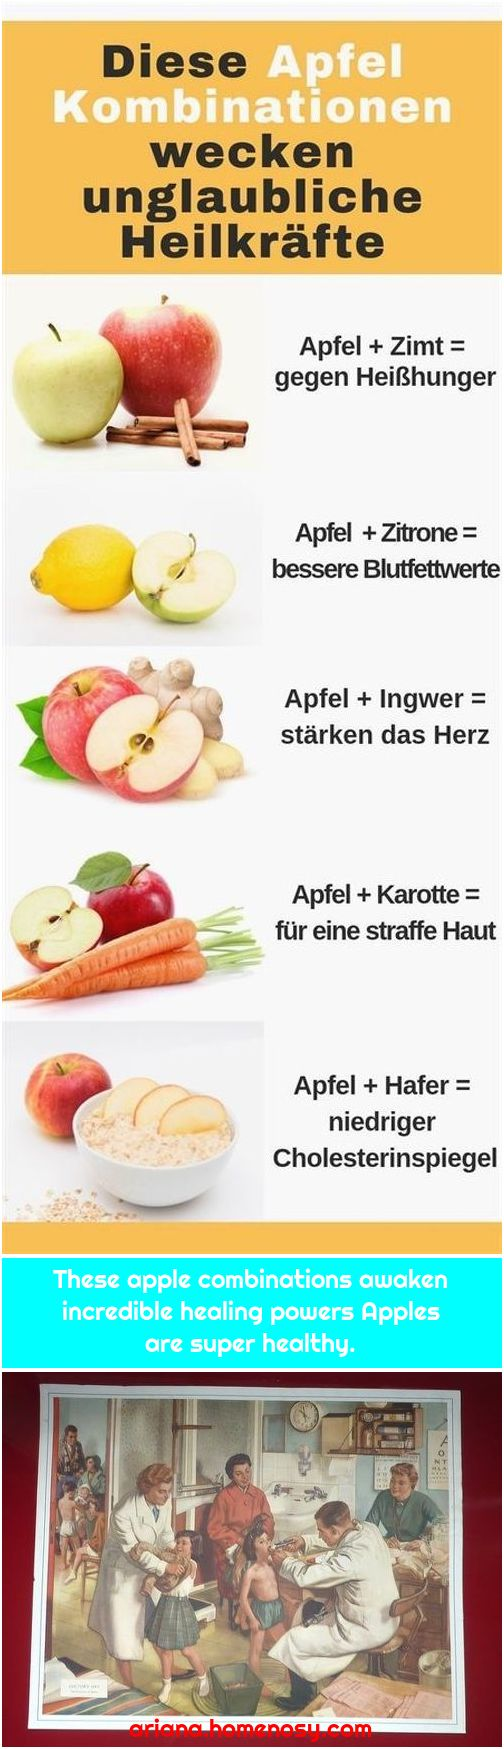 These apple combinations awaken incredible healing powers Apples are super healthy.